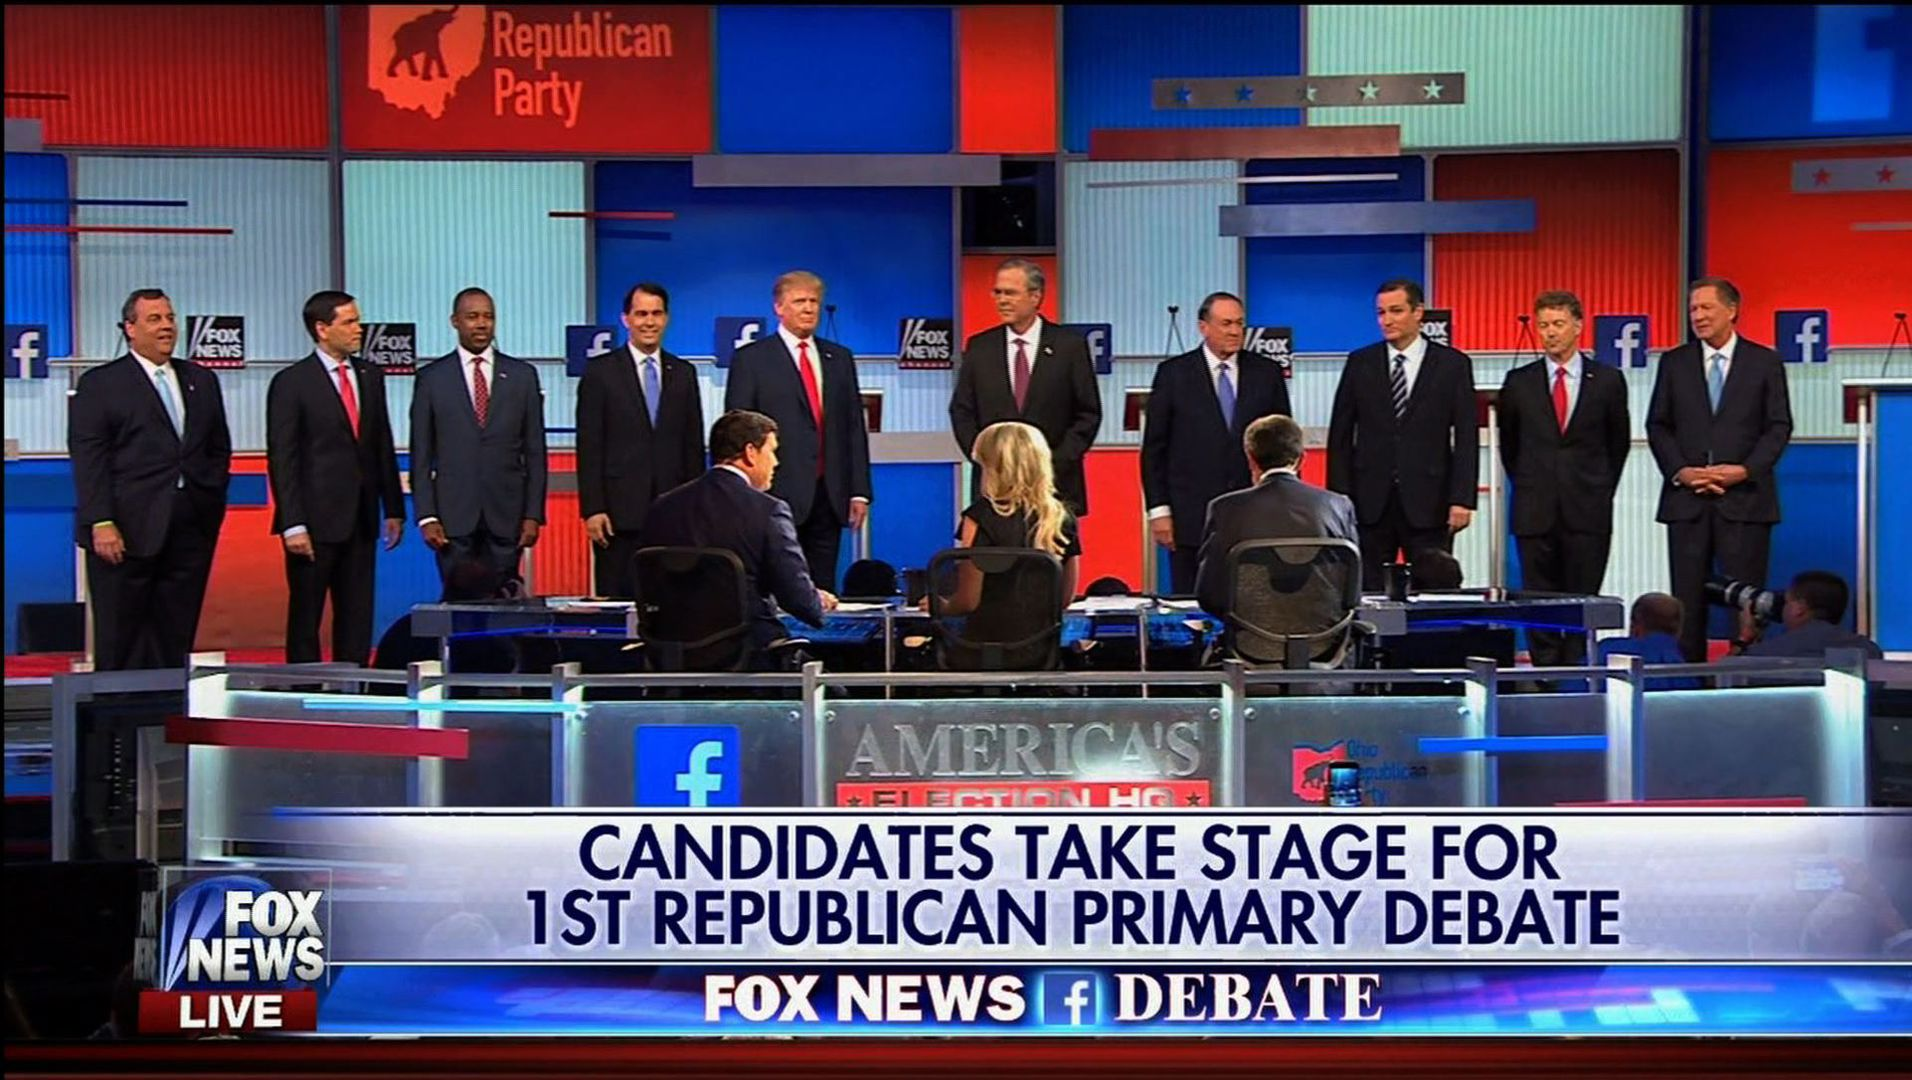 First Republican Primary Debate Candidates